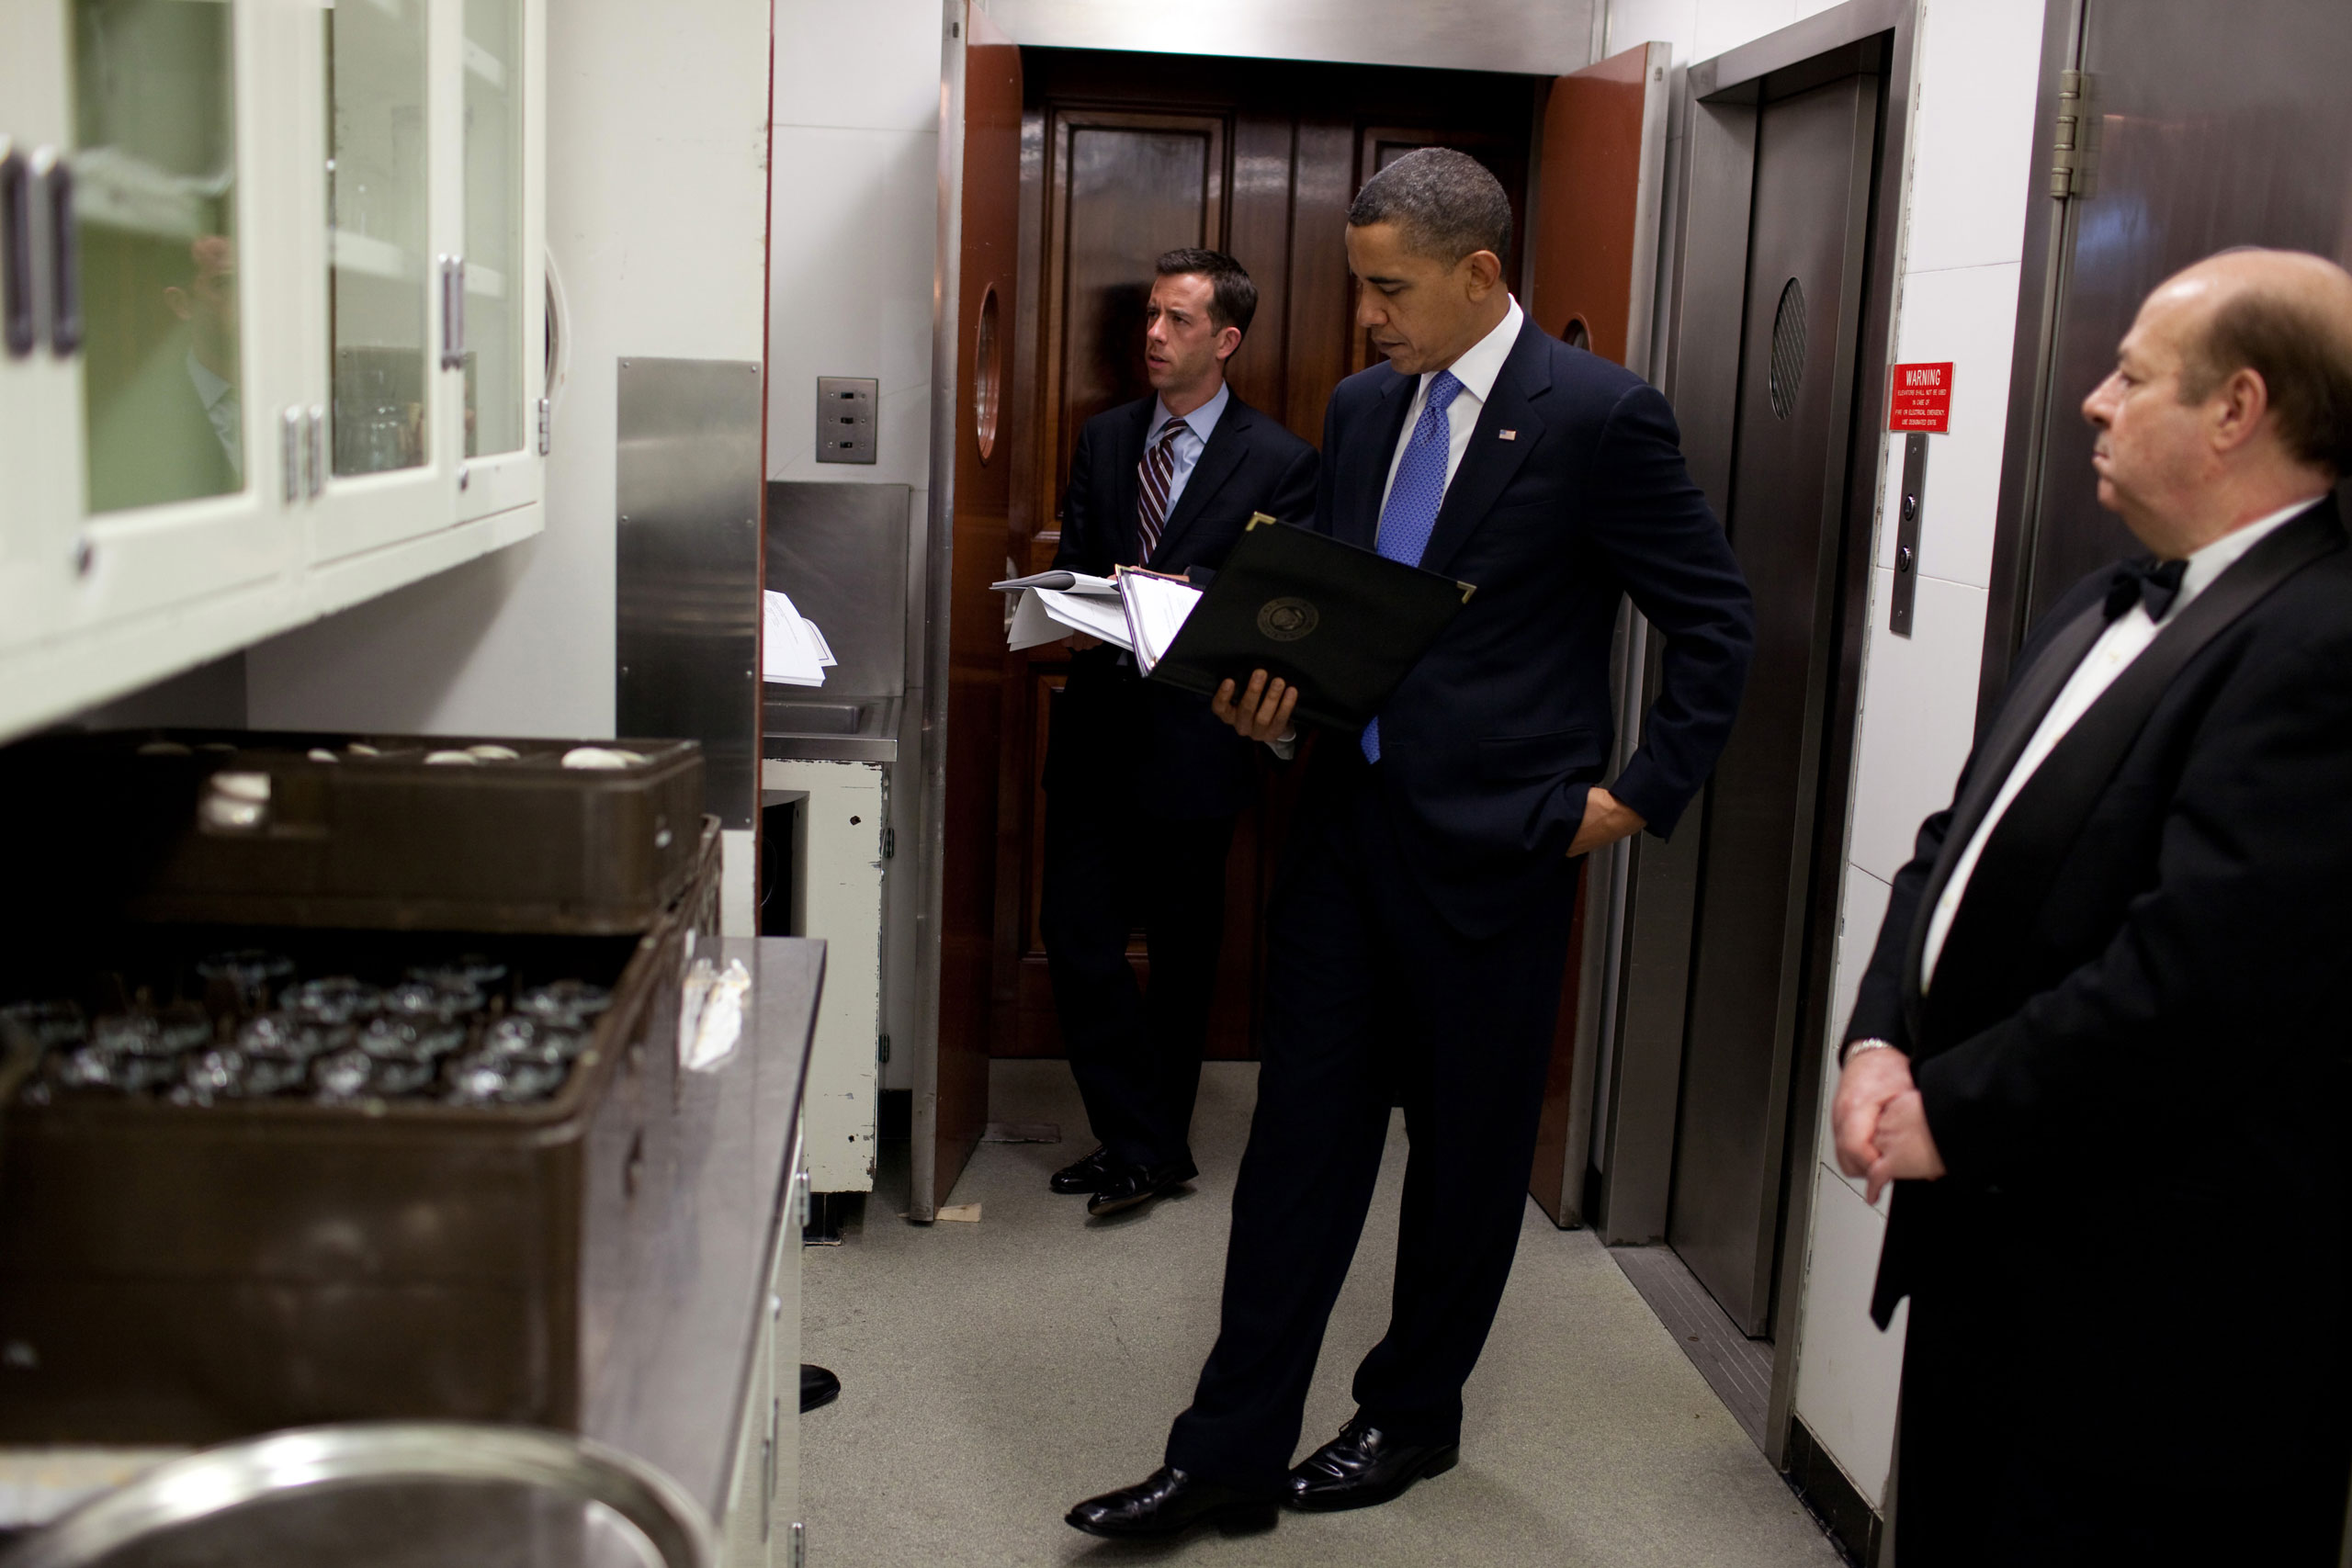 President Barack Obama waits in the Butlers' Pantry before he is introduced during the National Governors Association meeting at the White House, Feb. 22, 2010.